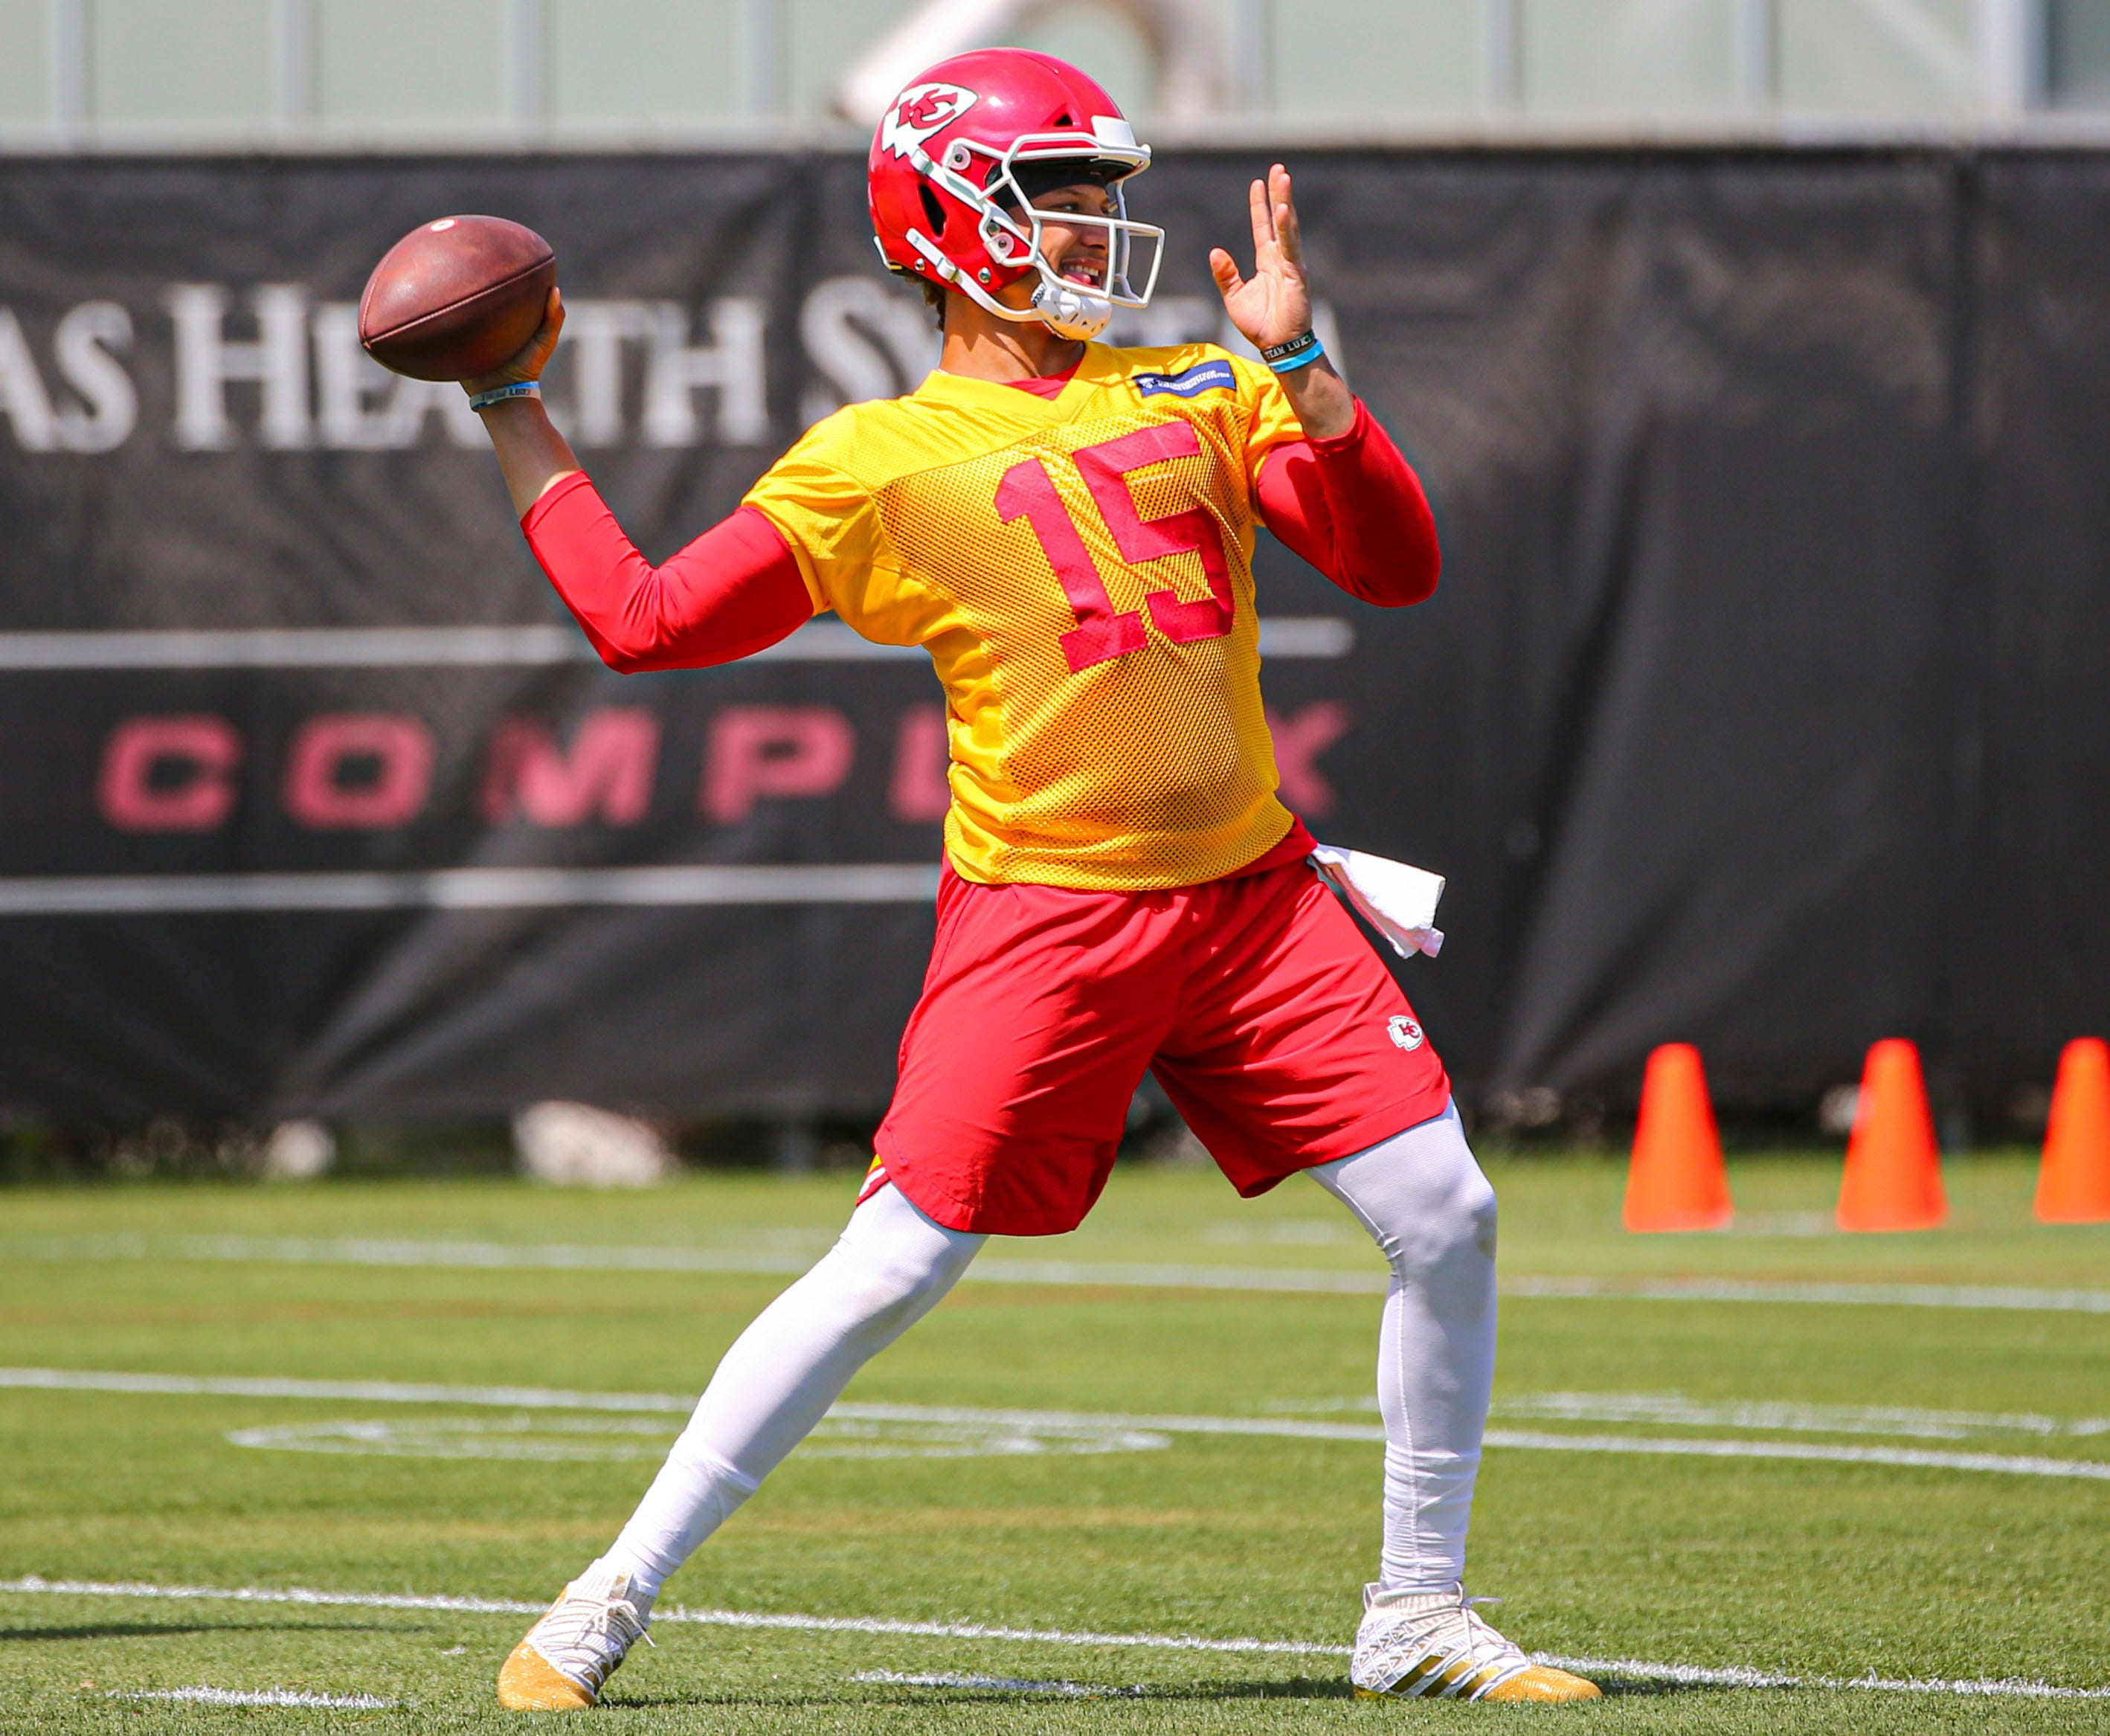 Watch reigning NFL MVP Patrick Mahomes launch a football out of Arrowhead Stadium